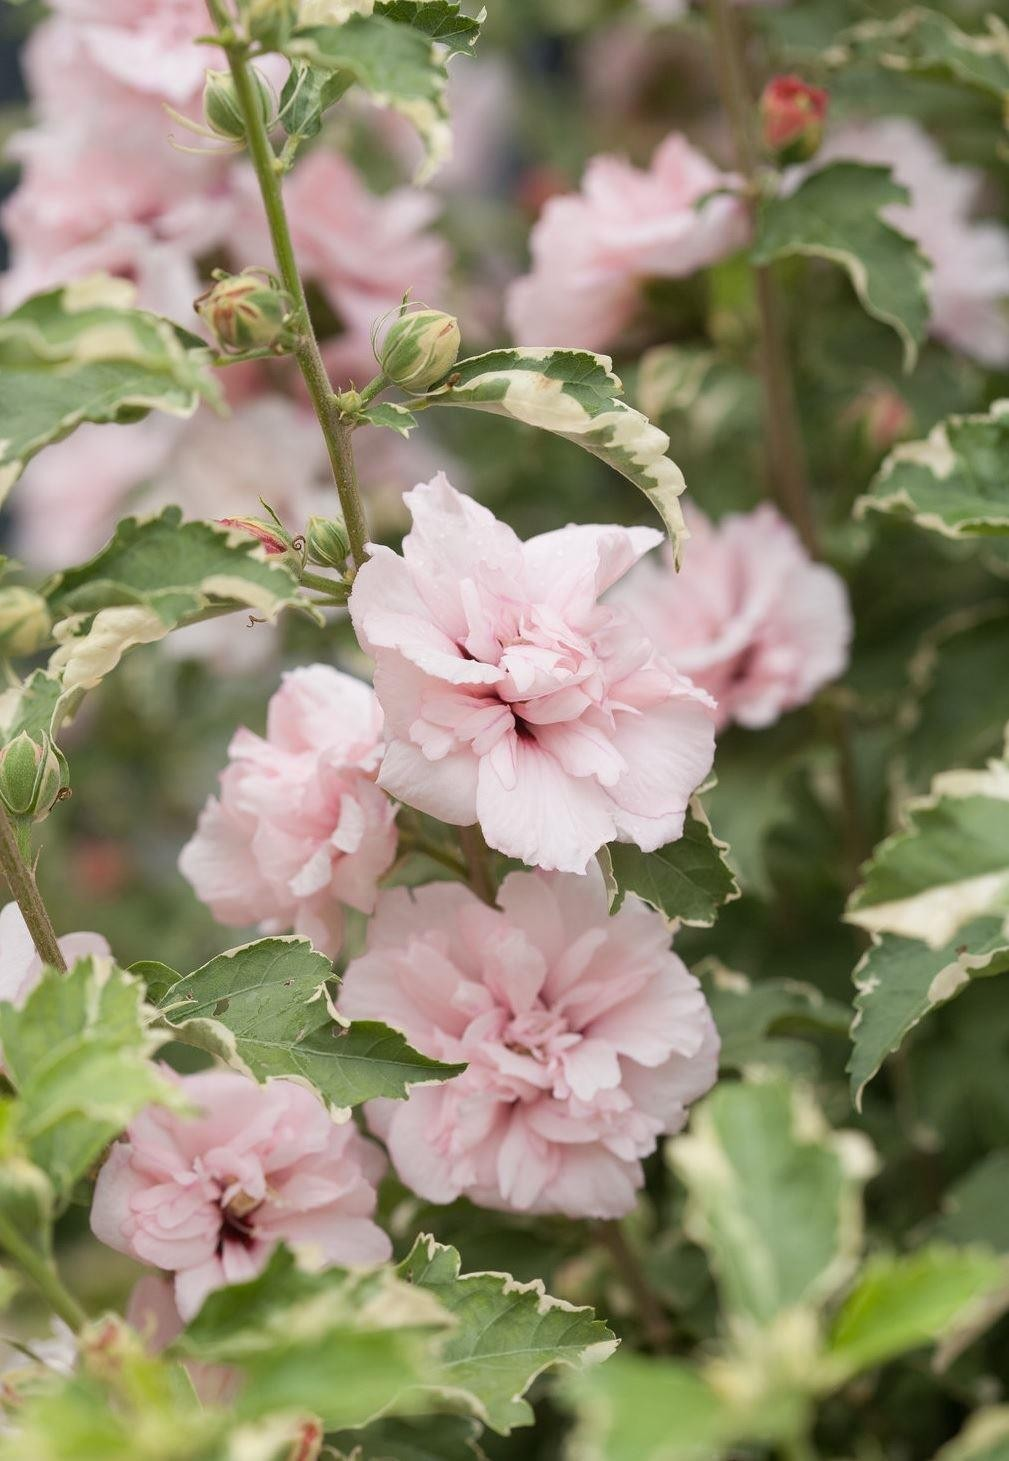 New exclusive hibiscus sugar tip rose of sharon double flowering variegated hibiscus new exclusive hibiscus sugar tip rose of sharon double flowering variegated hibiscus izmirmasajfo